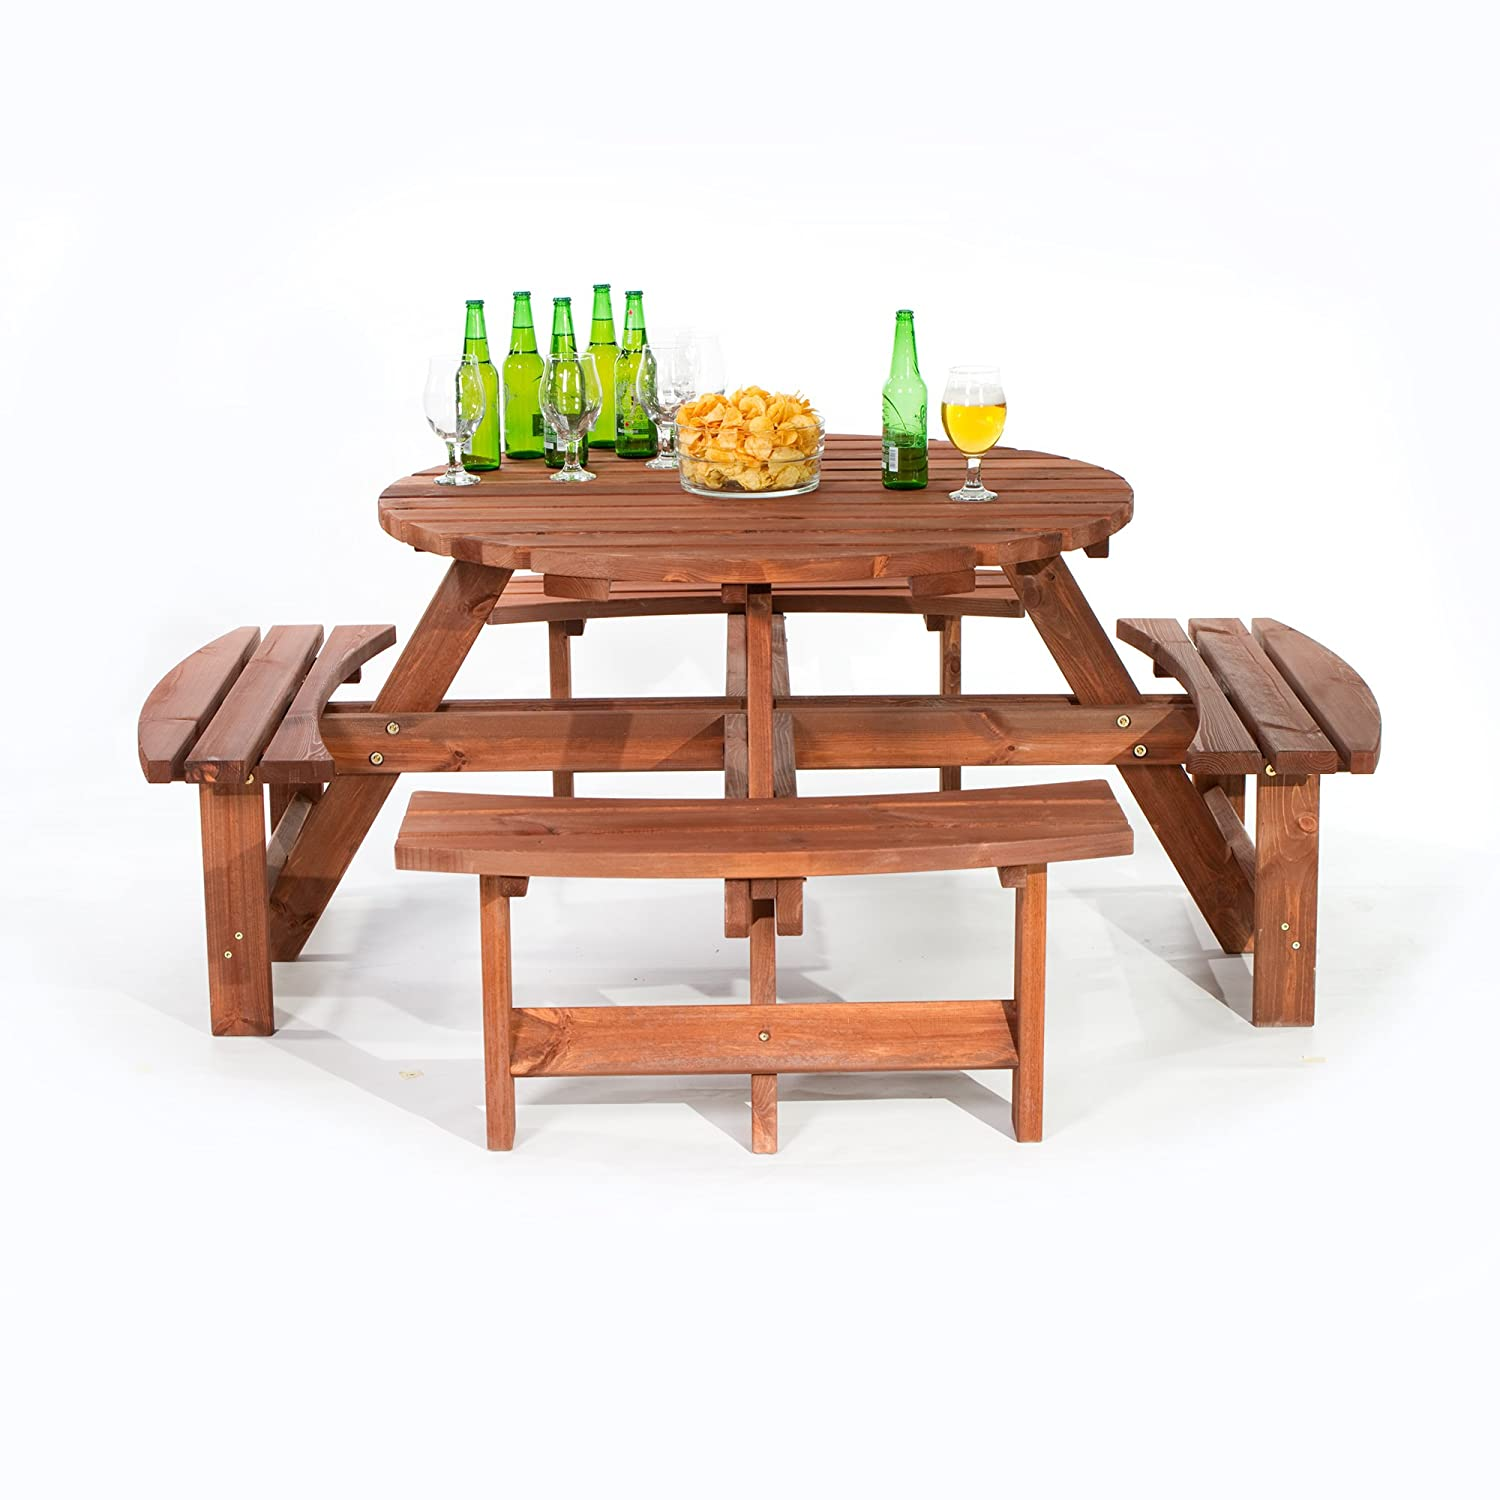 Surprising Brackenstyle Brown Picnic Pub Bench 8 Seater Round Wooden Garden Patio Table Thick Timbers Dip Treated Home Interior And Landscaping Ponolsignezvosmurscom